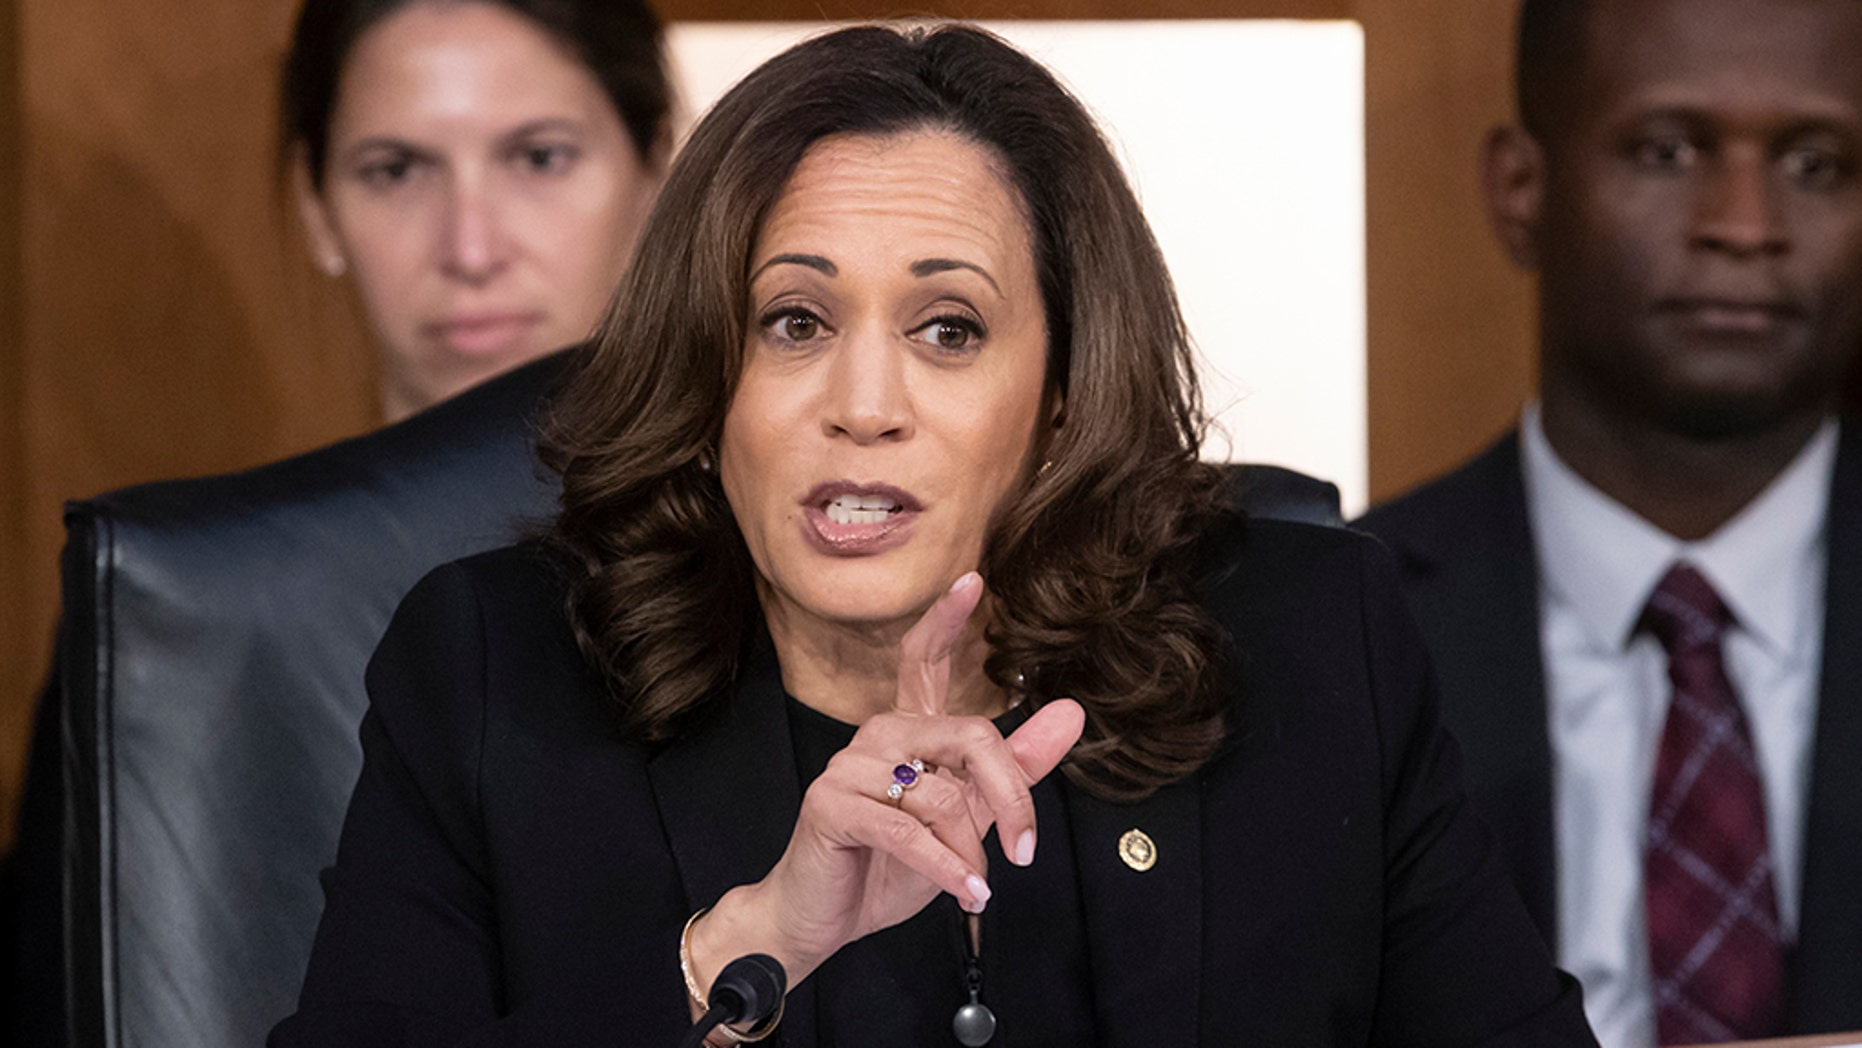 Seen as a potential 2020 presidential contender, Sen. Kamala Harris, D-Calif., garnered attention during Brett Kavanaugh's initial confirmation hearing with her intense questioning. (Associated Press)